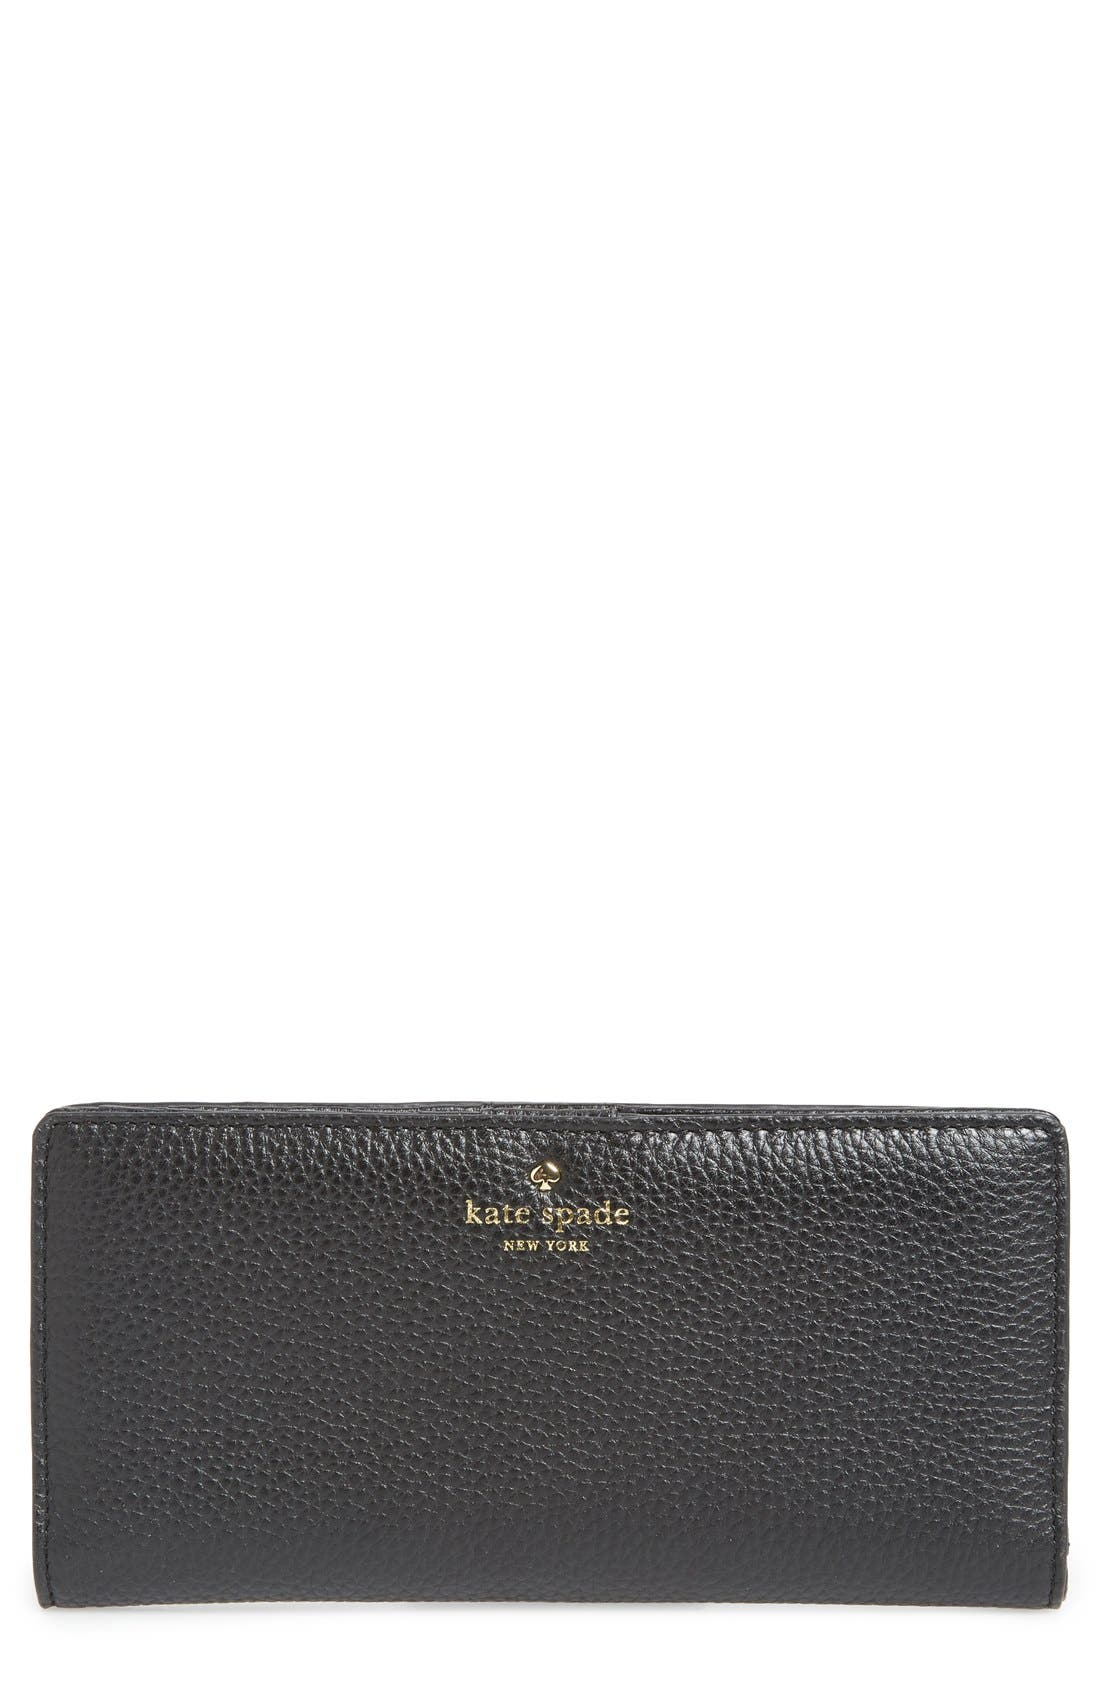 Main Image - kate spade new york 'cobble hill - large stacy' leather wallet